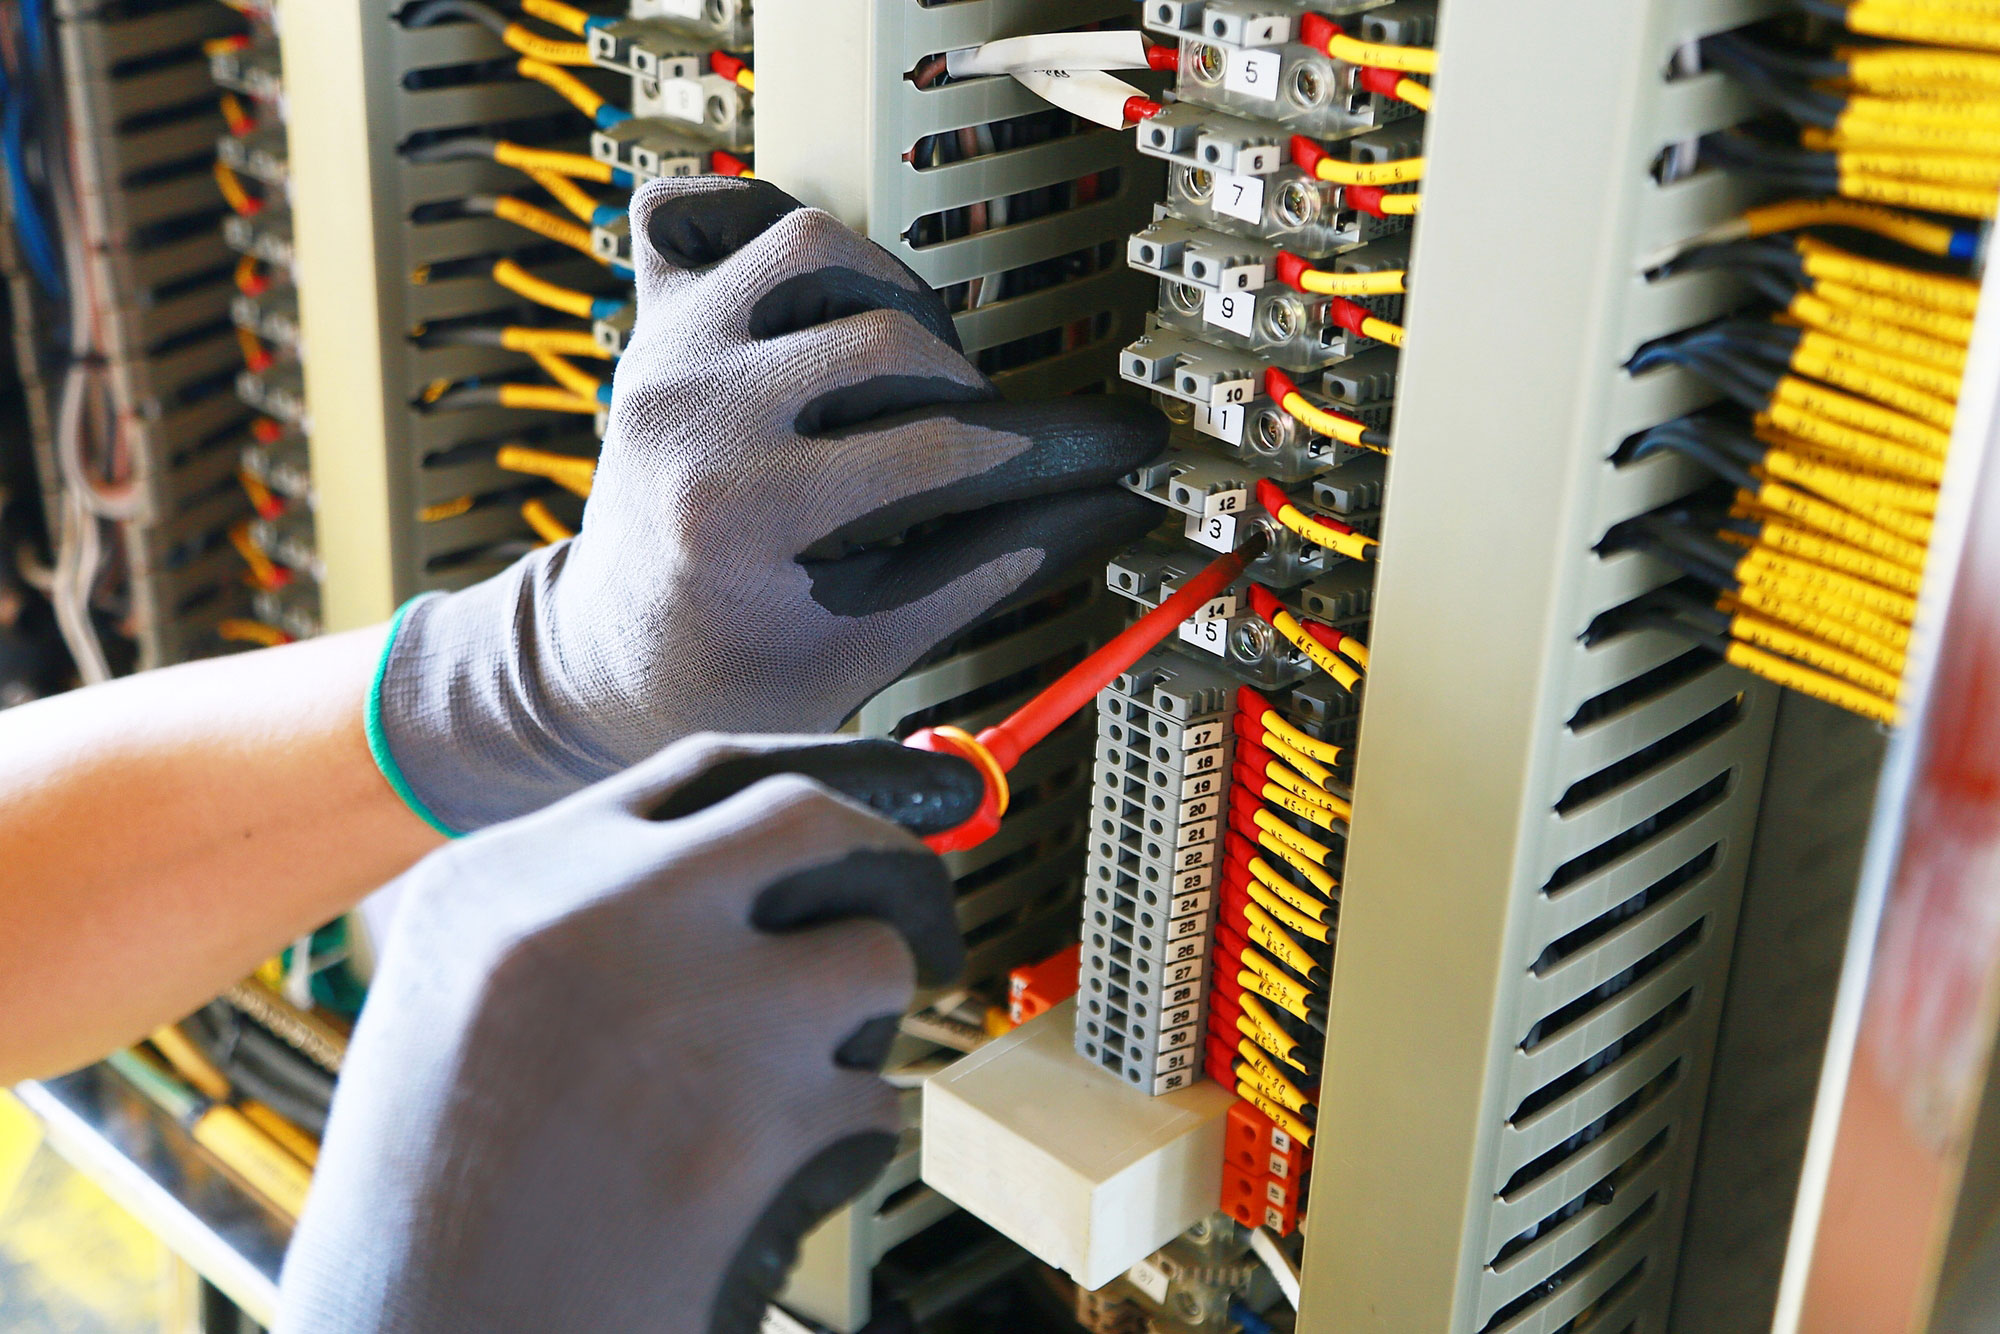 Electrical device install in control panel for support program and control function by PLC. routine visit check equipment by technician.